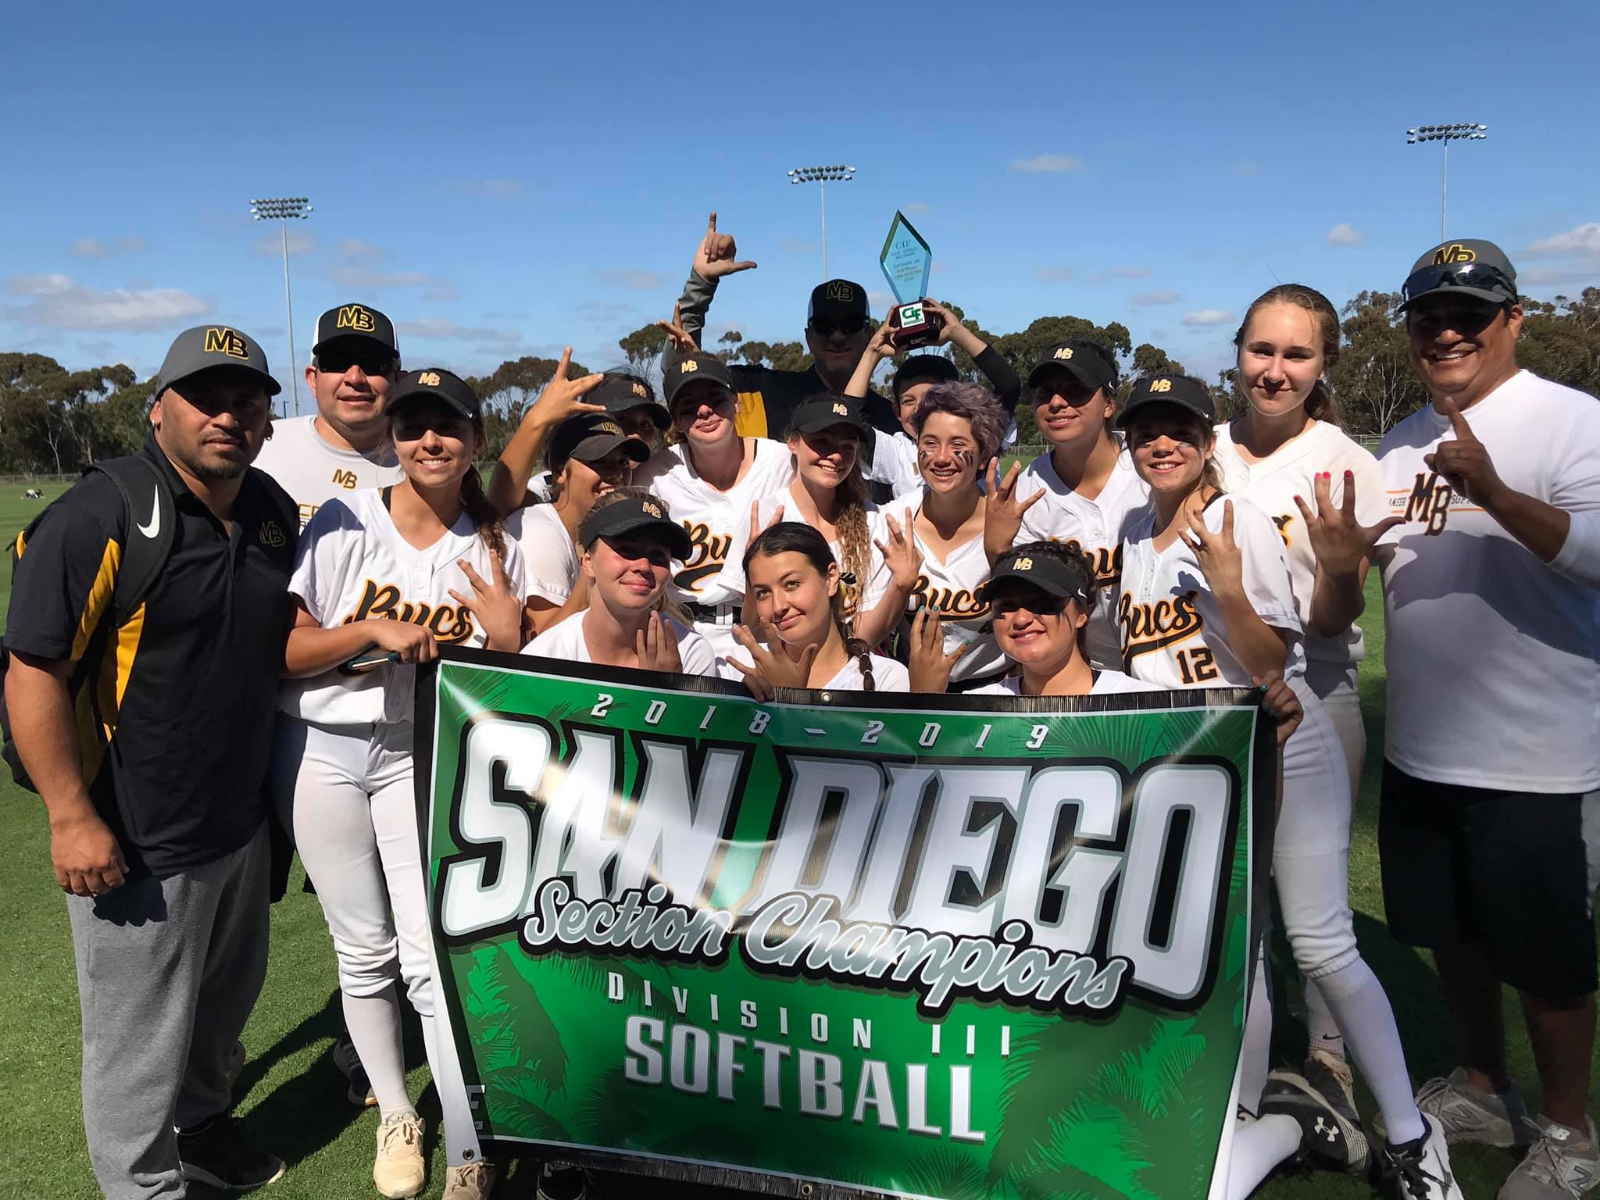 Mission Bay Softball Wins CIF Division III Championship with Comeback